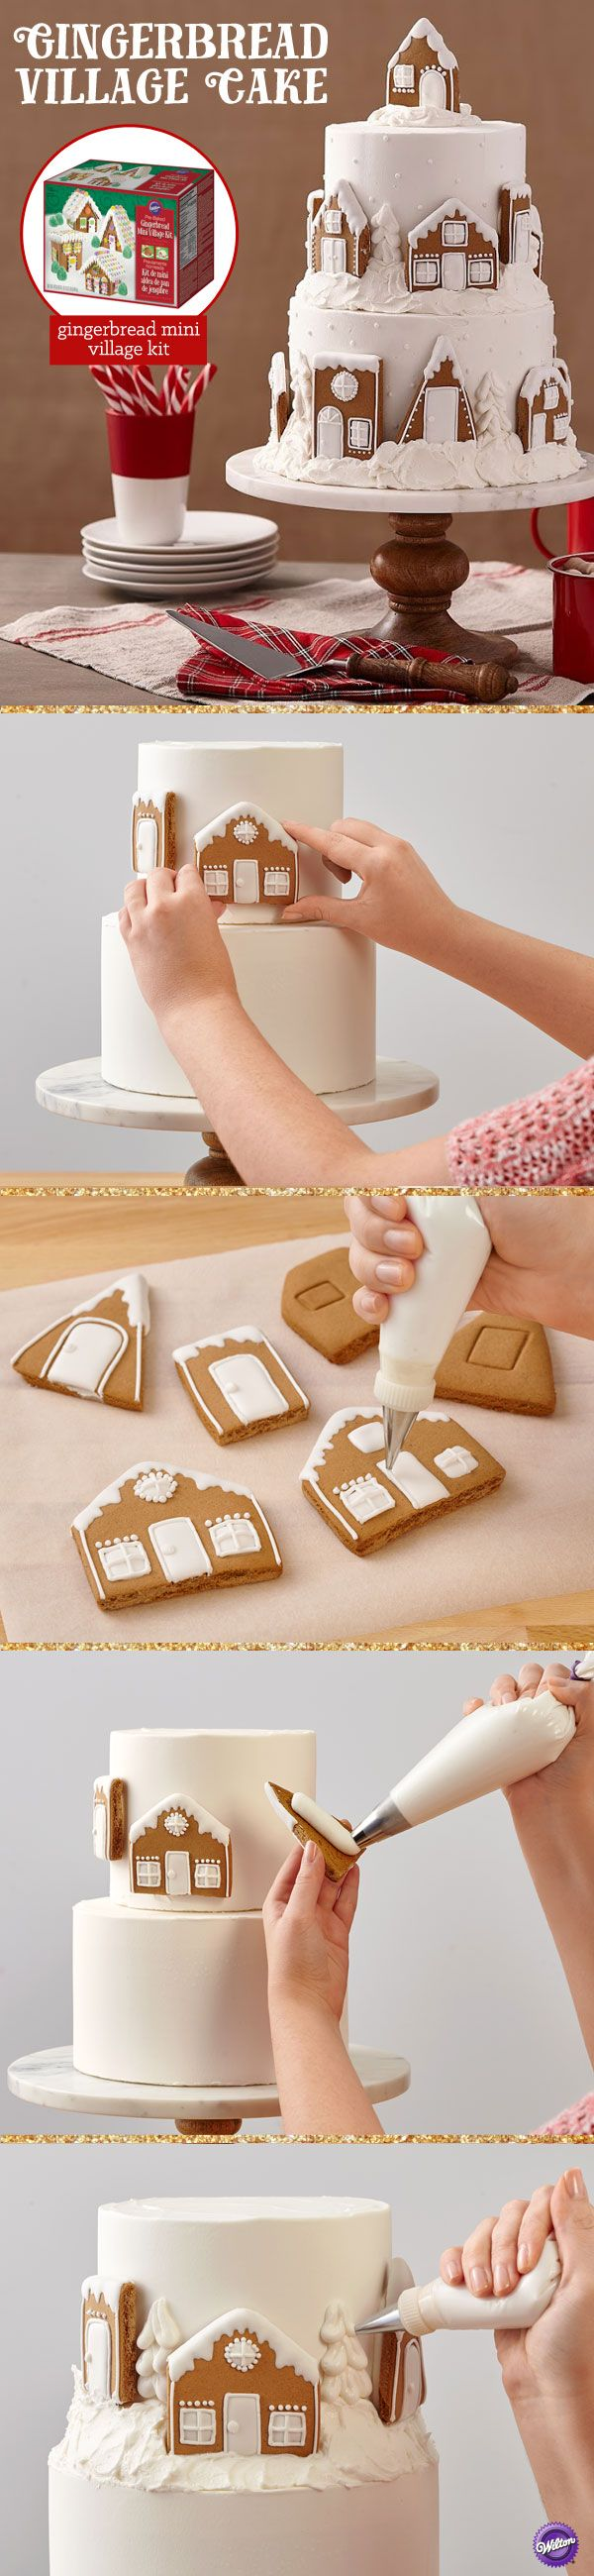 Gingerbread kits are not just for the holidays! Here, the cookies from the…